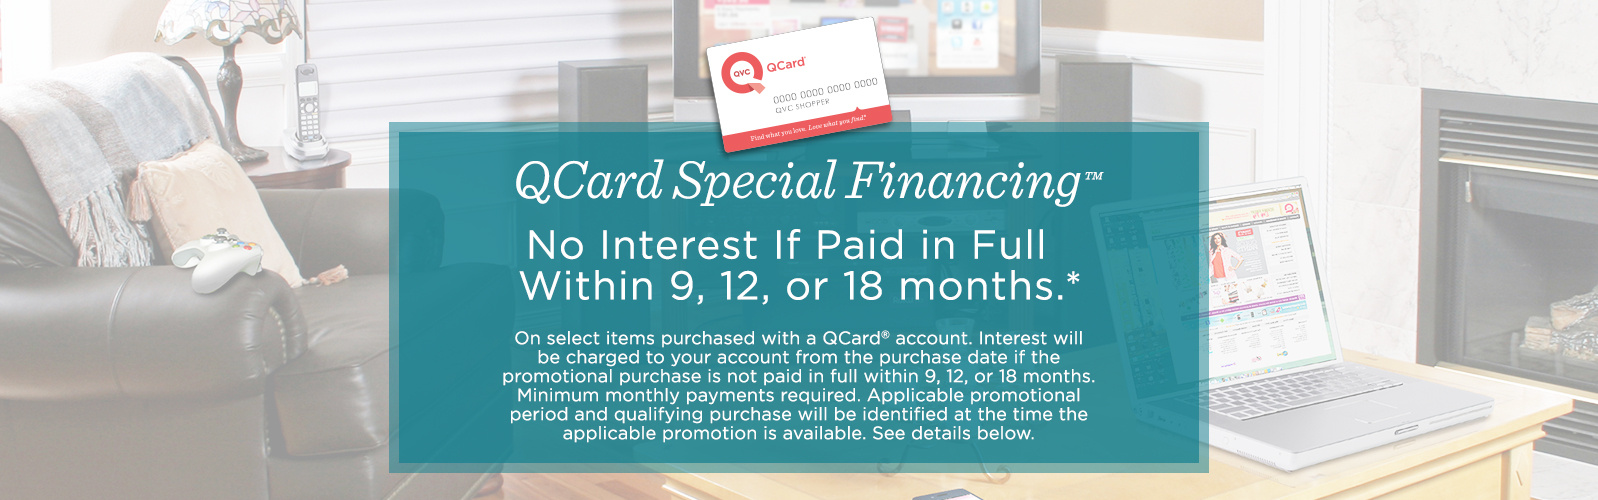 QCard Special Financing™  No Interest If Paid in Full Within 9,  12, or 18 months.*  On select items purchased with a QCard® account. Interest will be charged to your account from the purchase date if the promotional purchase is not paid in full within 9, 12, or 18 months. Minimum monthly payments required. Applicable promotional period and qualifying purchase will be identified at the time the applicable promotion is available. See details below.